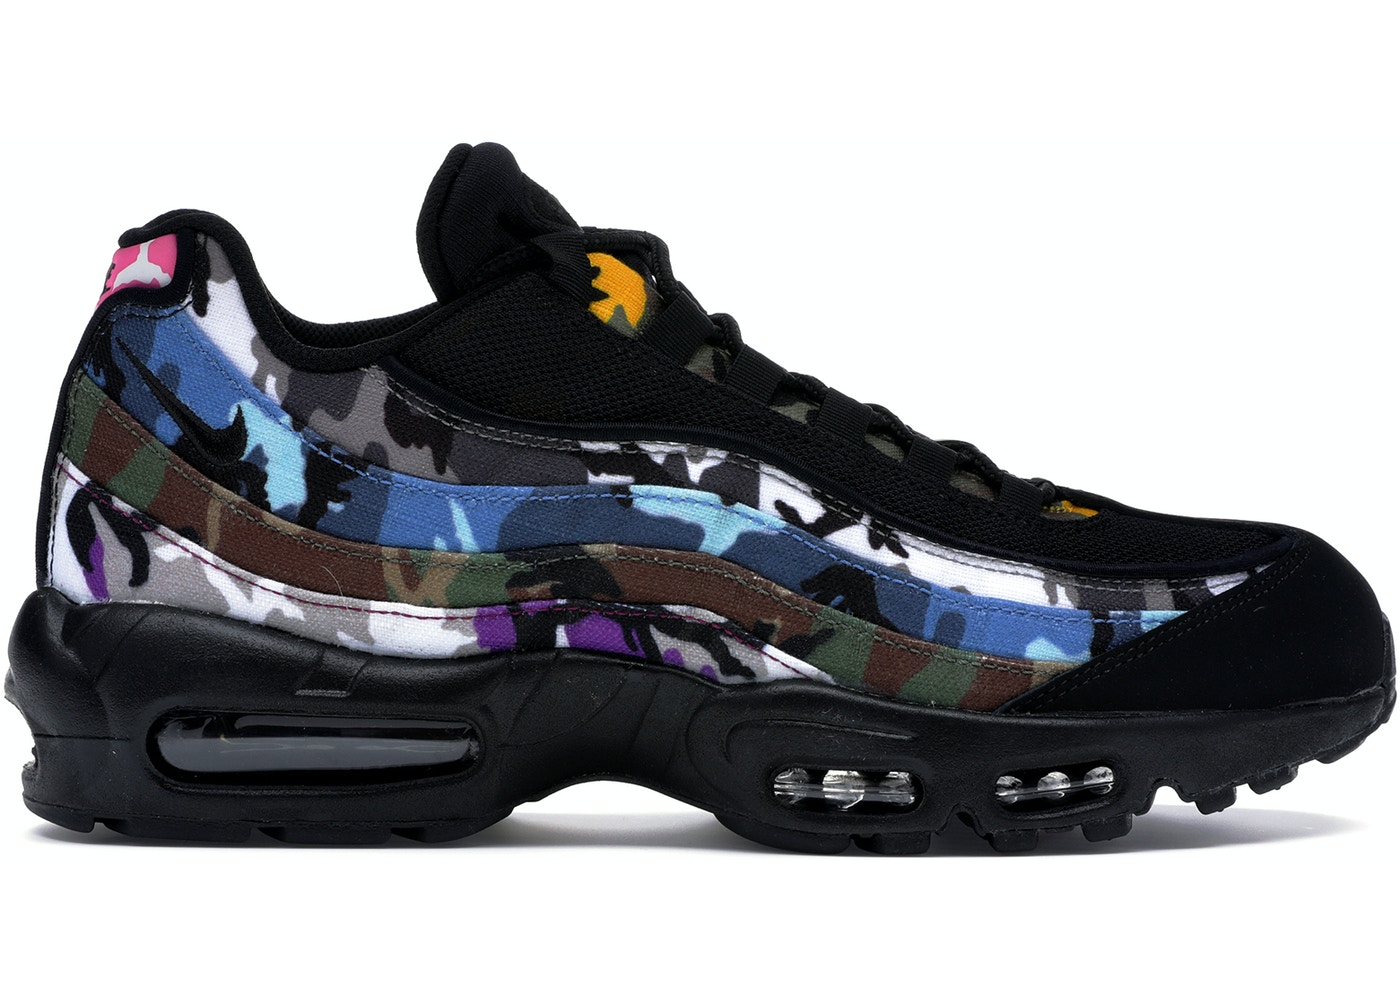 separation shoes e4079 945a5 nike air max 95 Air Max 95 ERDL Party Black - AR4473-001